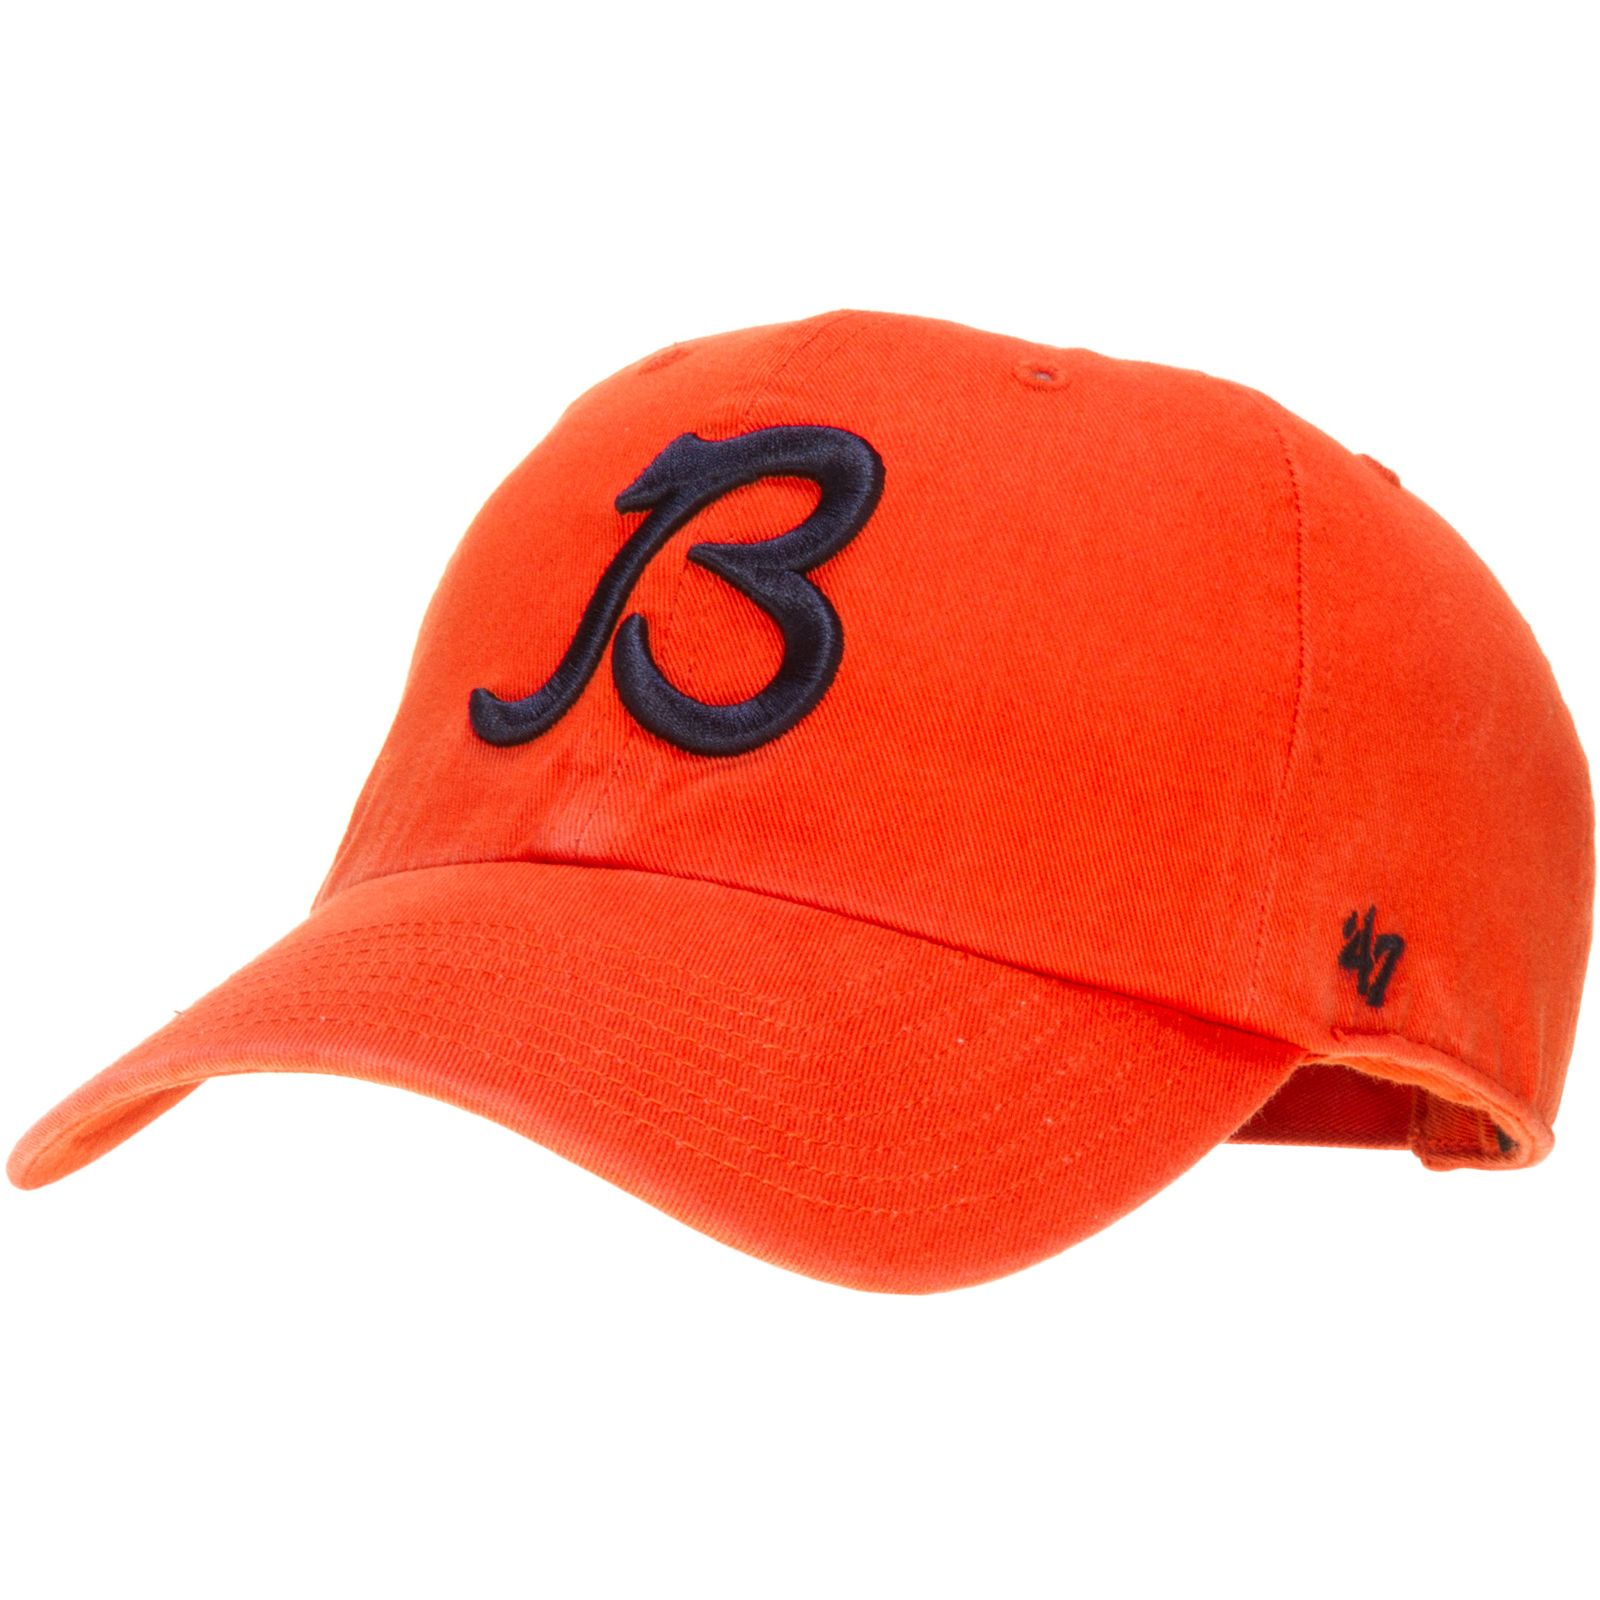 Chicago Bears Orange Adjustable Hat With Script B Logo By 47 Brand Chicago Bears Chicagobears Chicago Bears Adjustable Hat Hats